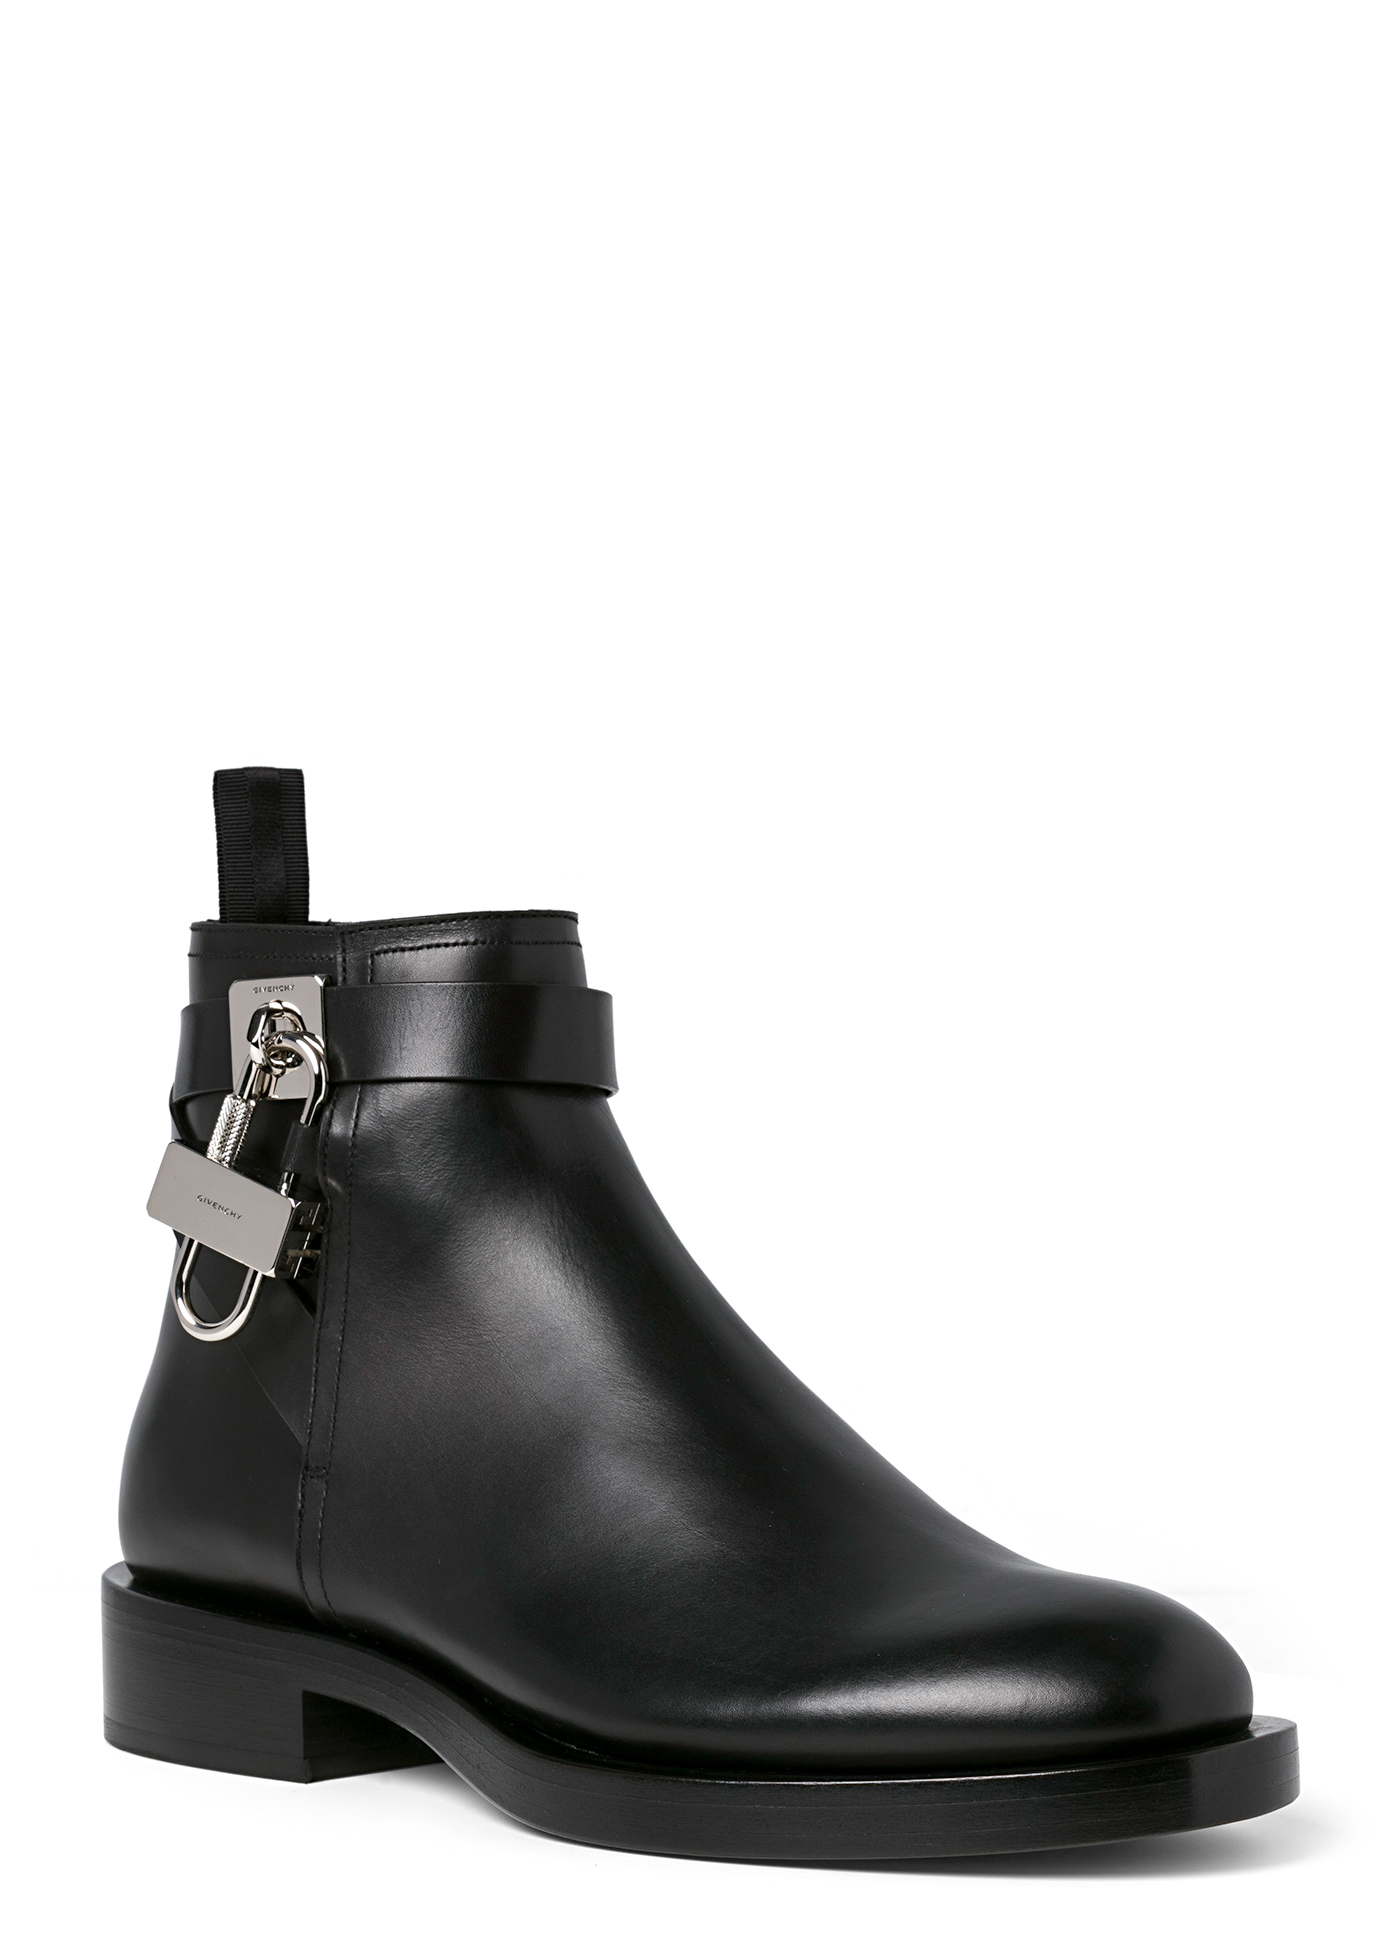 LOCK ANKLE BOOTS image number 1